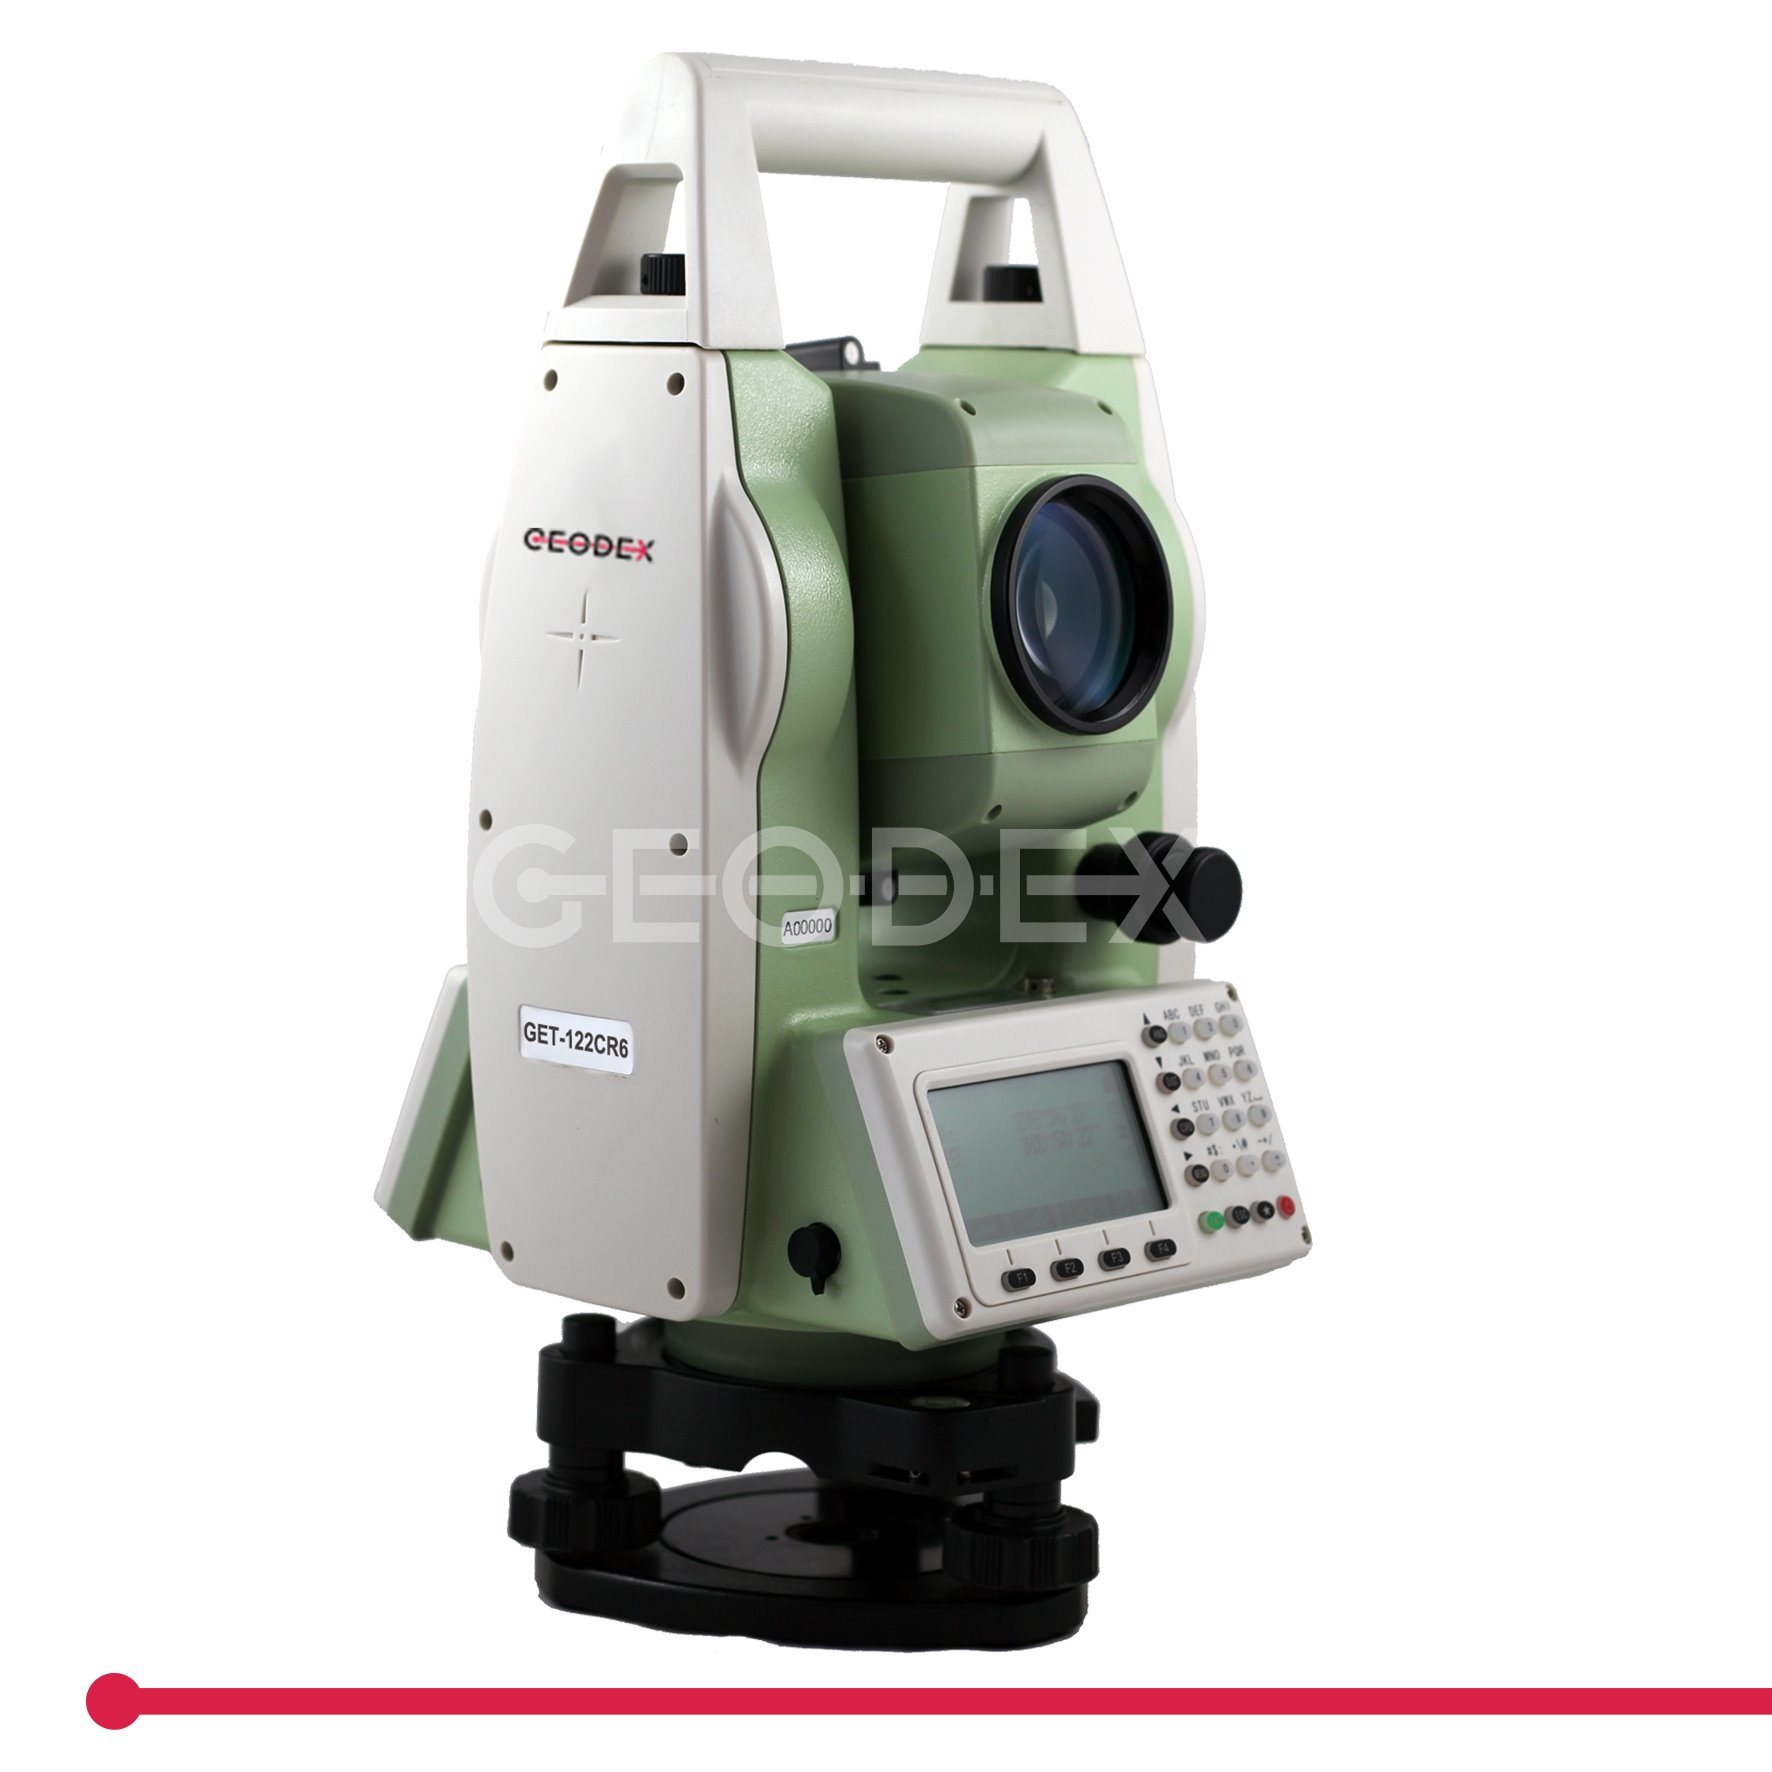 Reflectorless Total Station Surveying Instrument